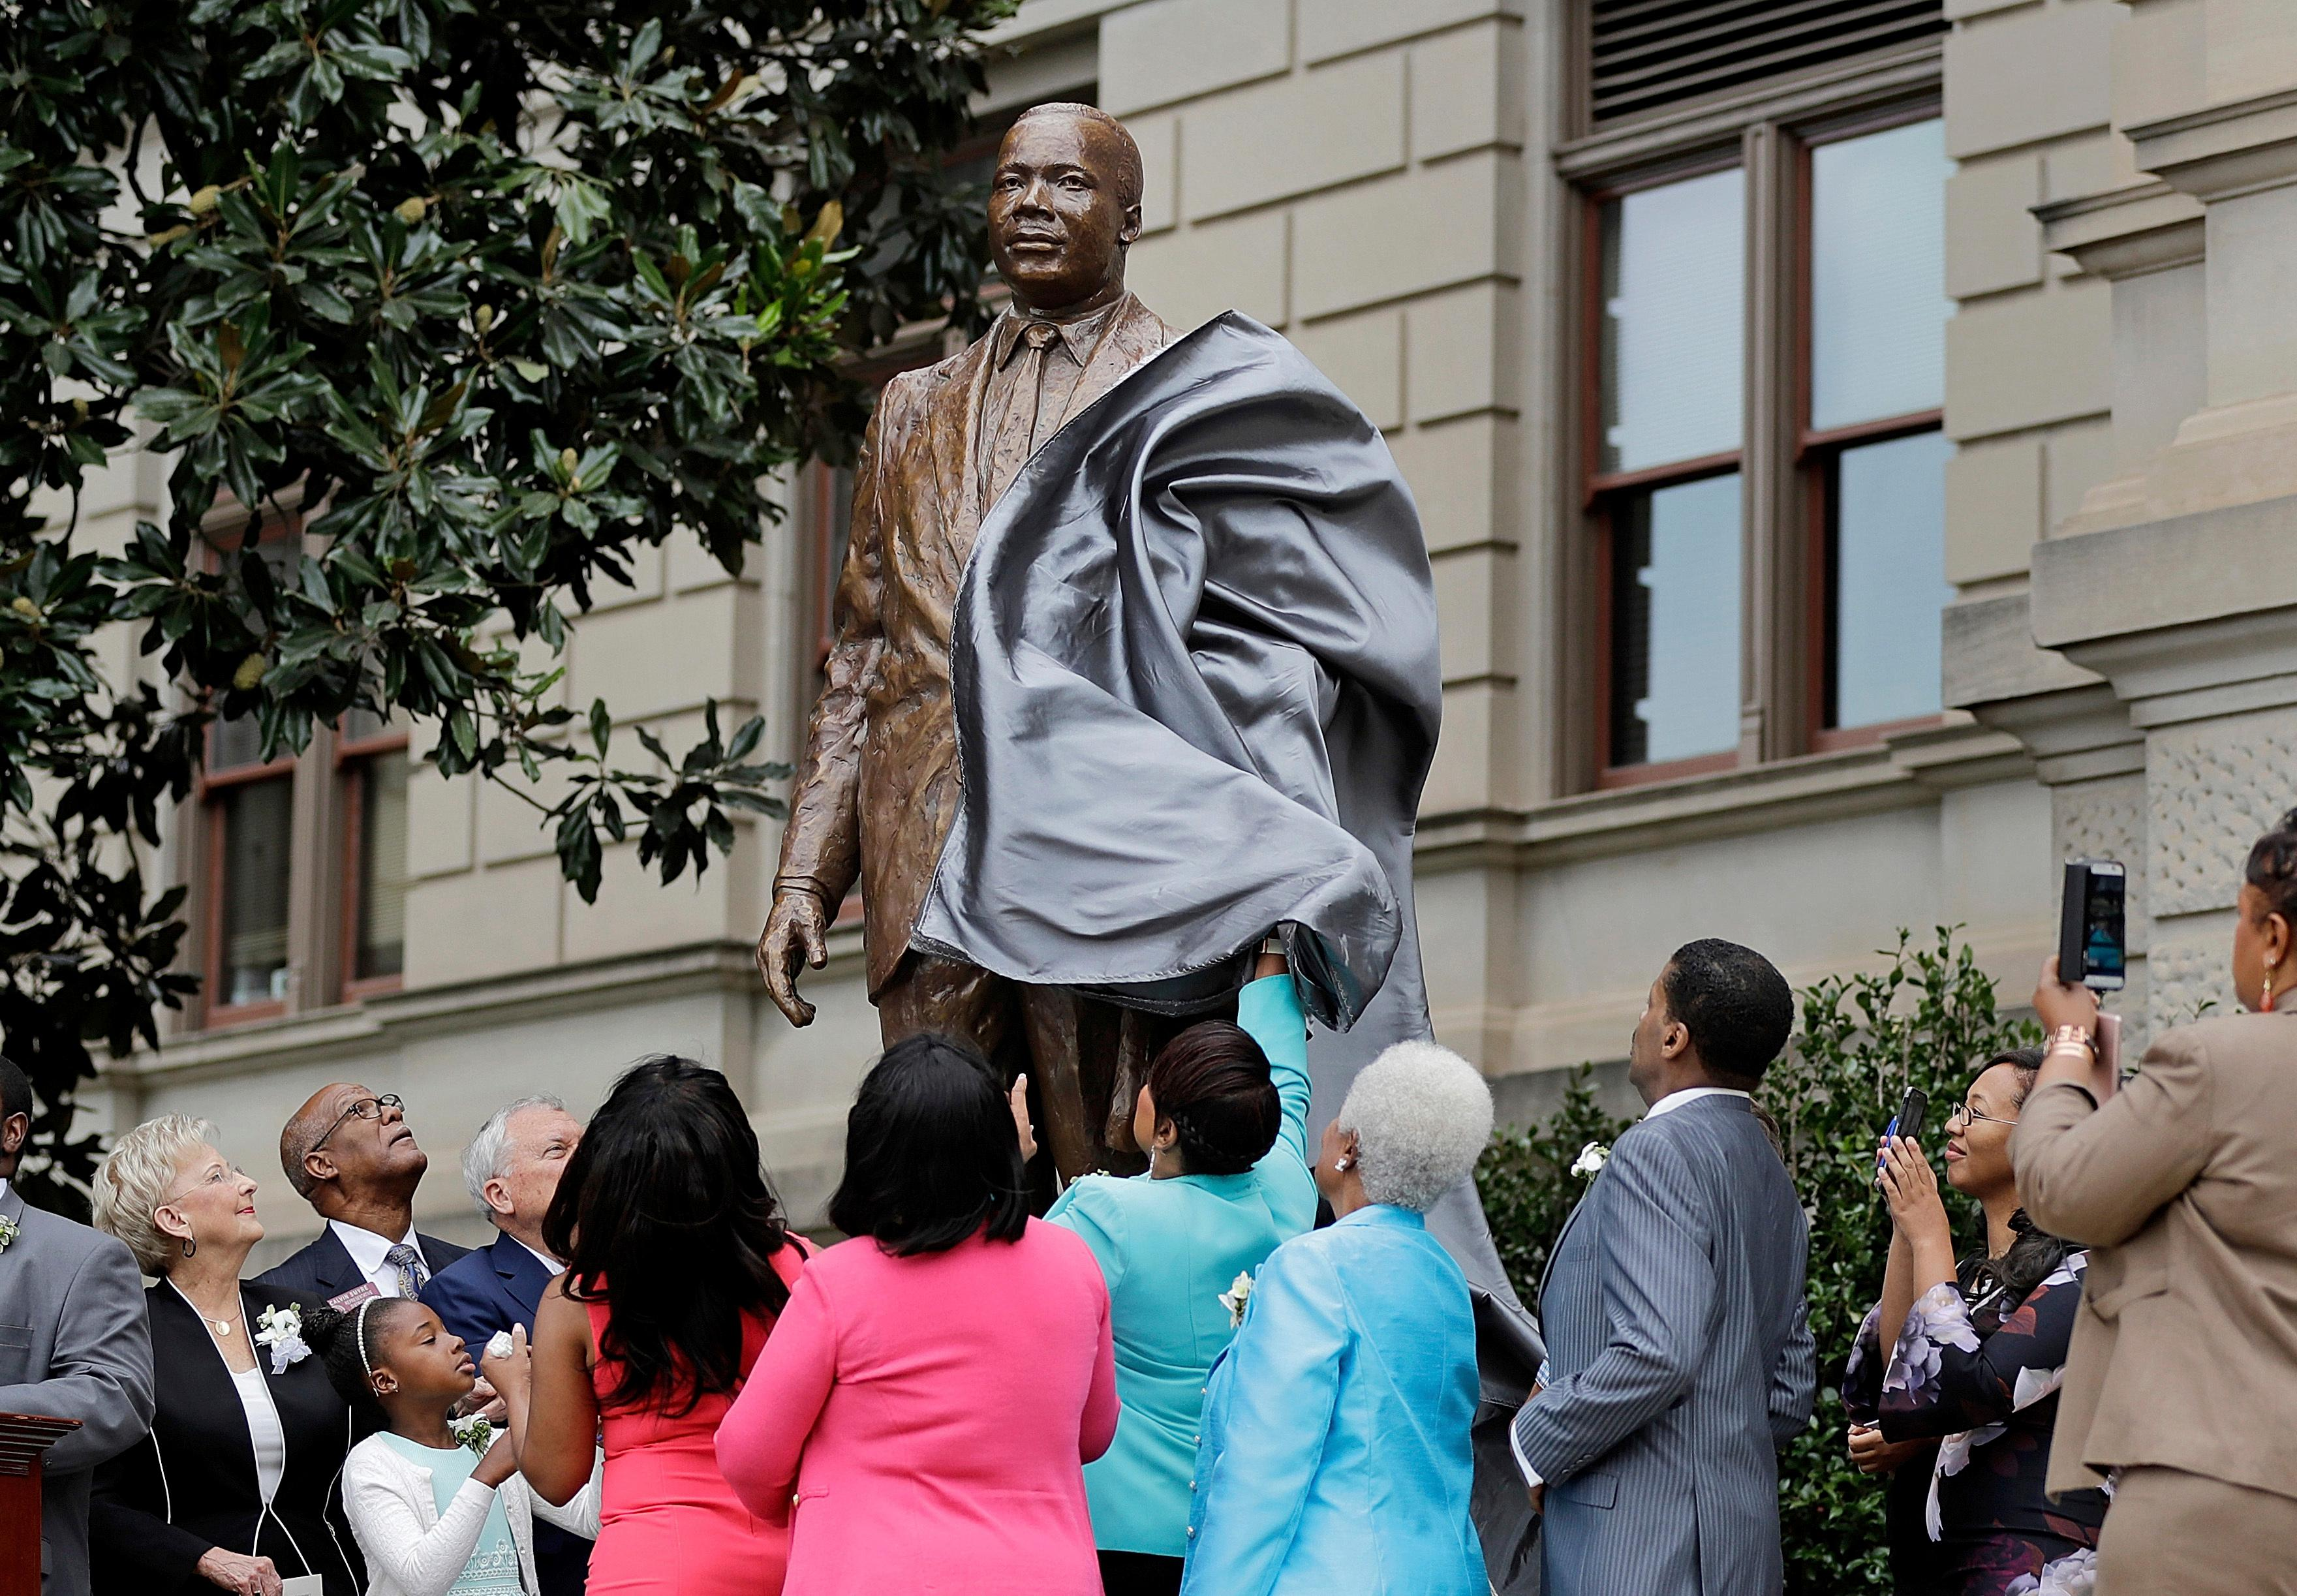 "A statue paying tribute to civil rights leader Martin Luther King Jr. is unveiled on the state Capitol grounds in Atlanta, Monday, Aug. 28, 2017. The statue's unveiling Monday came more than three years after Georgia lawmakers endorsed the project. A replica of the nation's Liberty Bell tolled three times before the 8-foot (2.44-meter) bronze statue was unveiled on the 54th anniversary of King's ""I have a dream"" speech at the march on Washington. (AP Photo/David Goldman)"